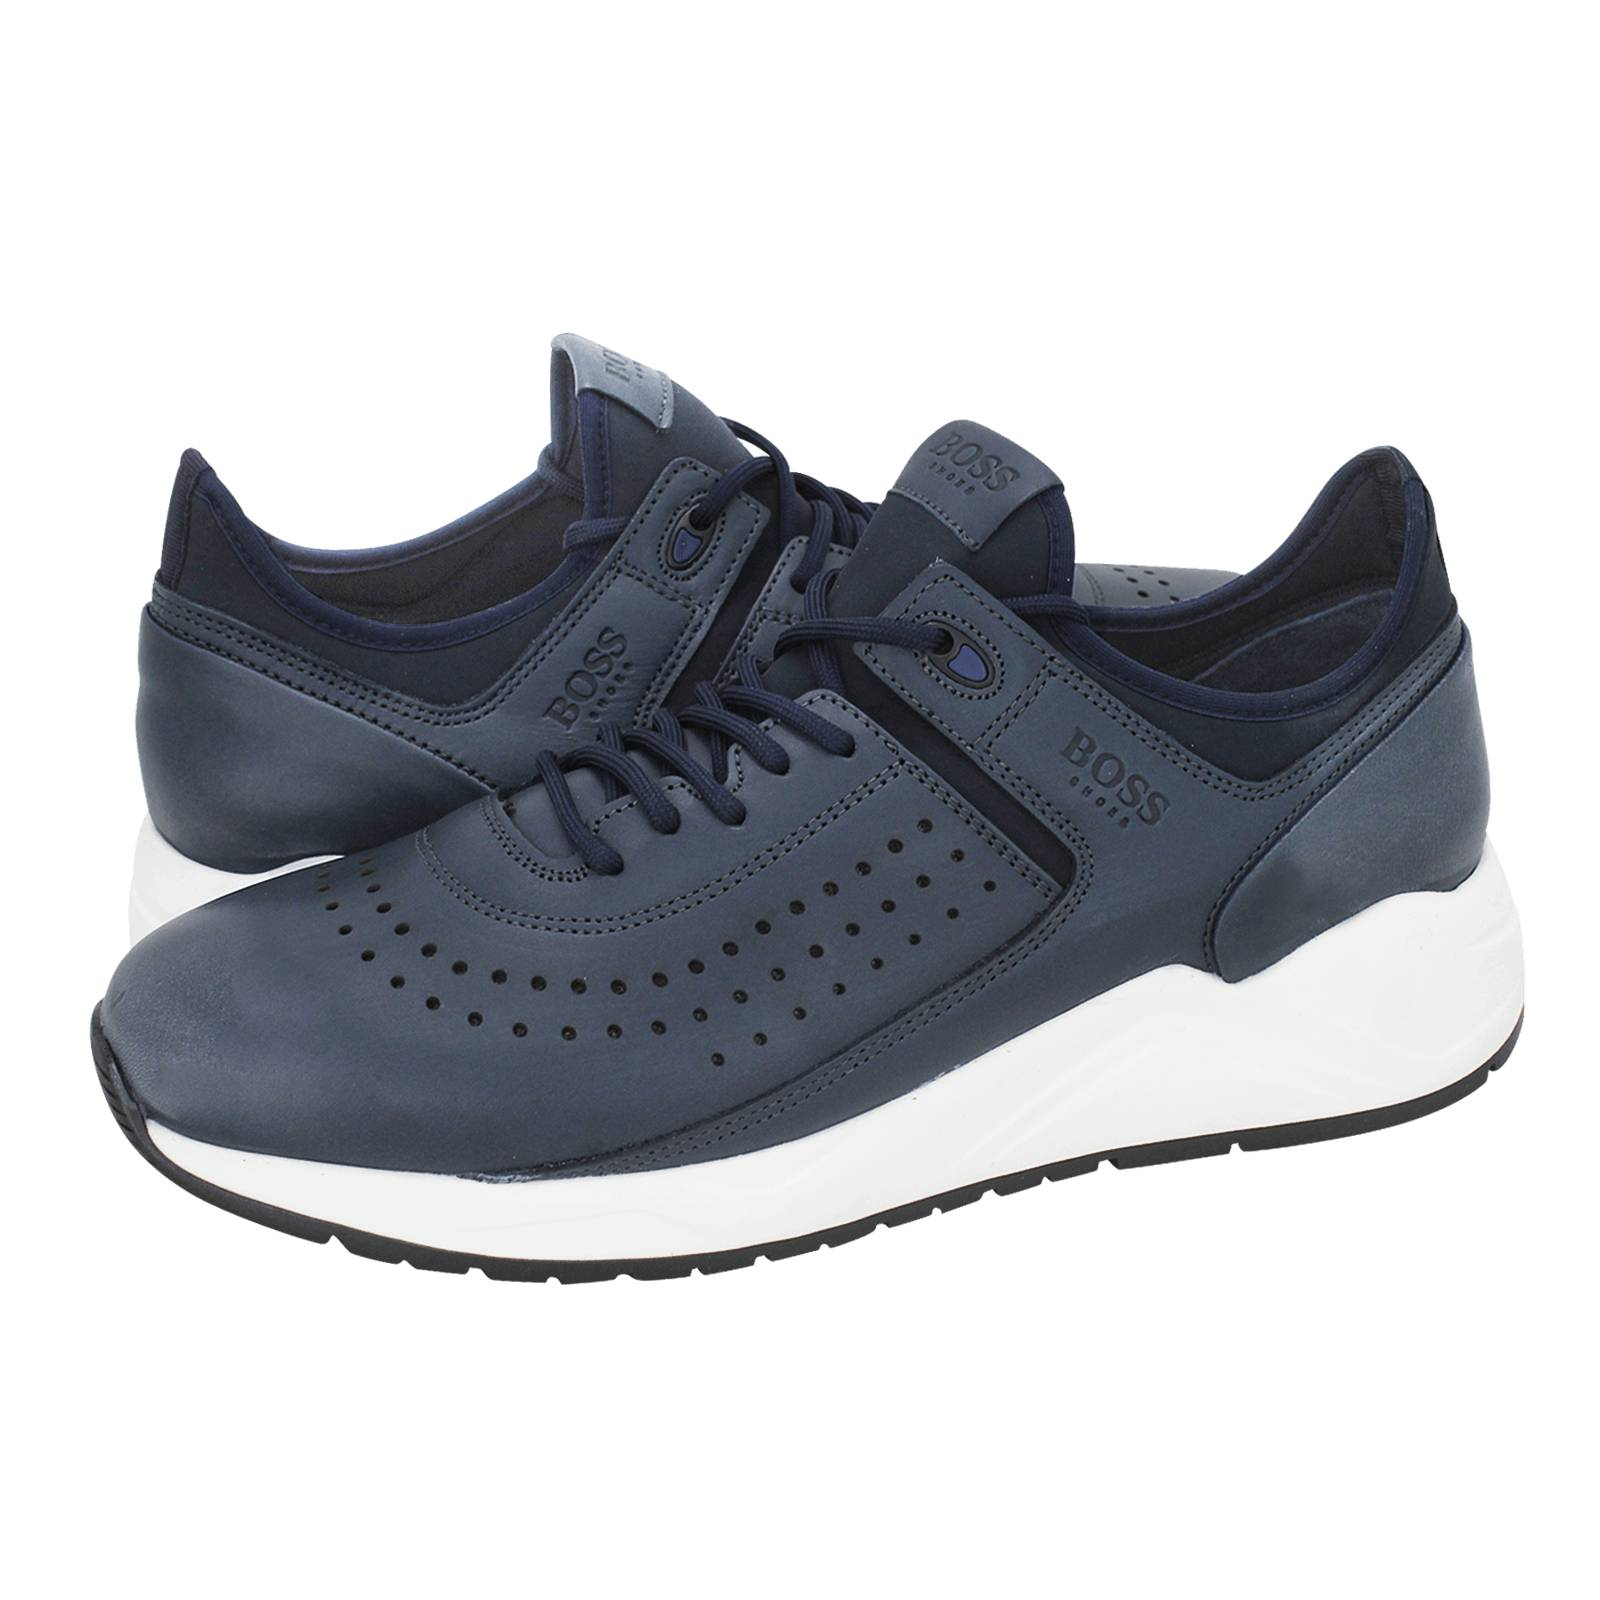 555ddf42e Cerasa - Boss Men's casual shoes made of leather and stretching - Gianna  Kazakou Online